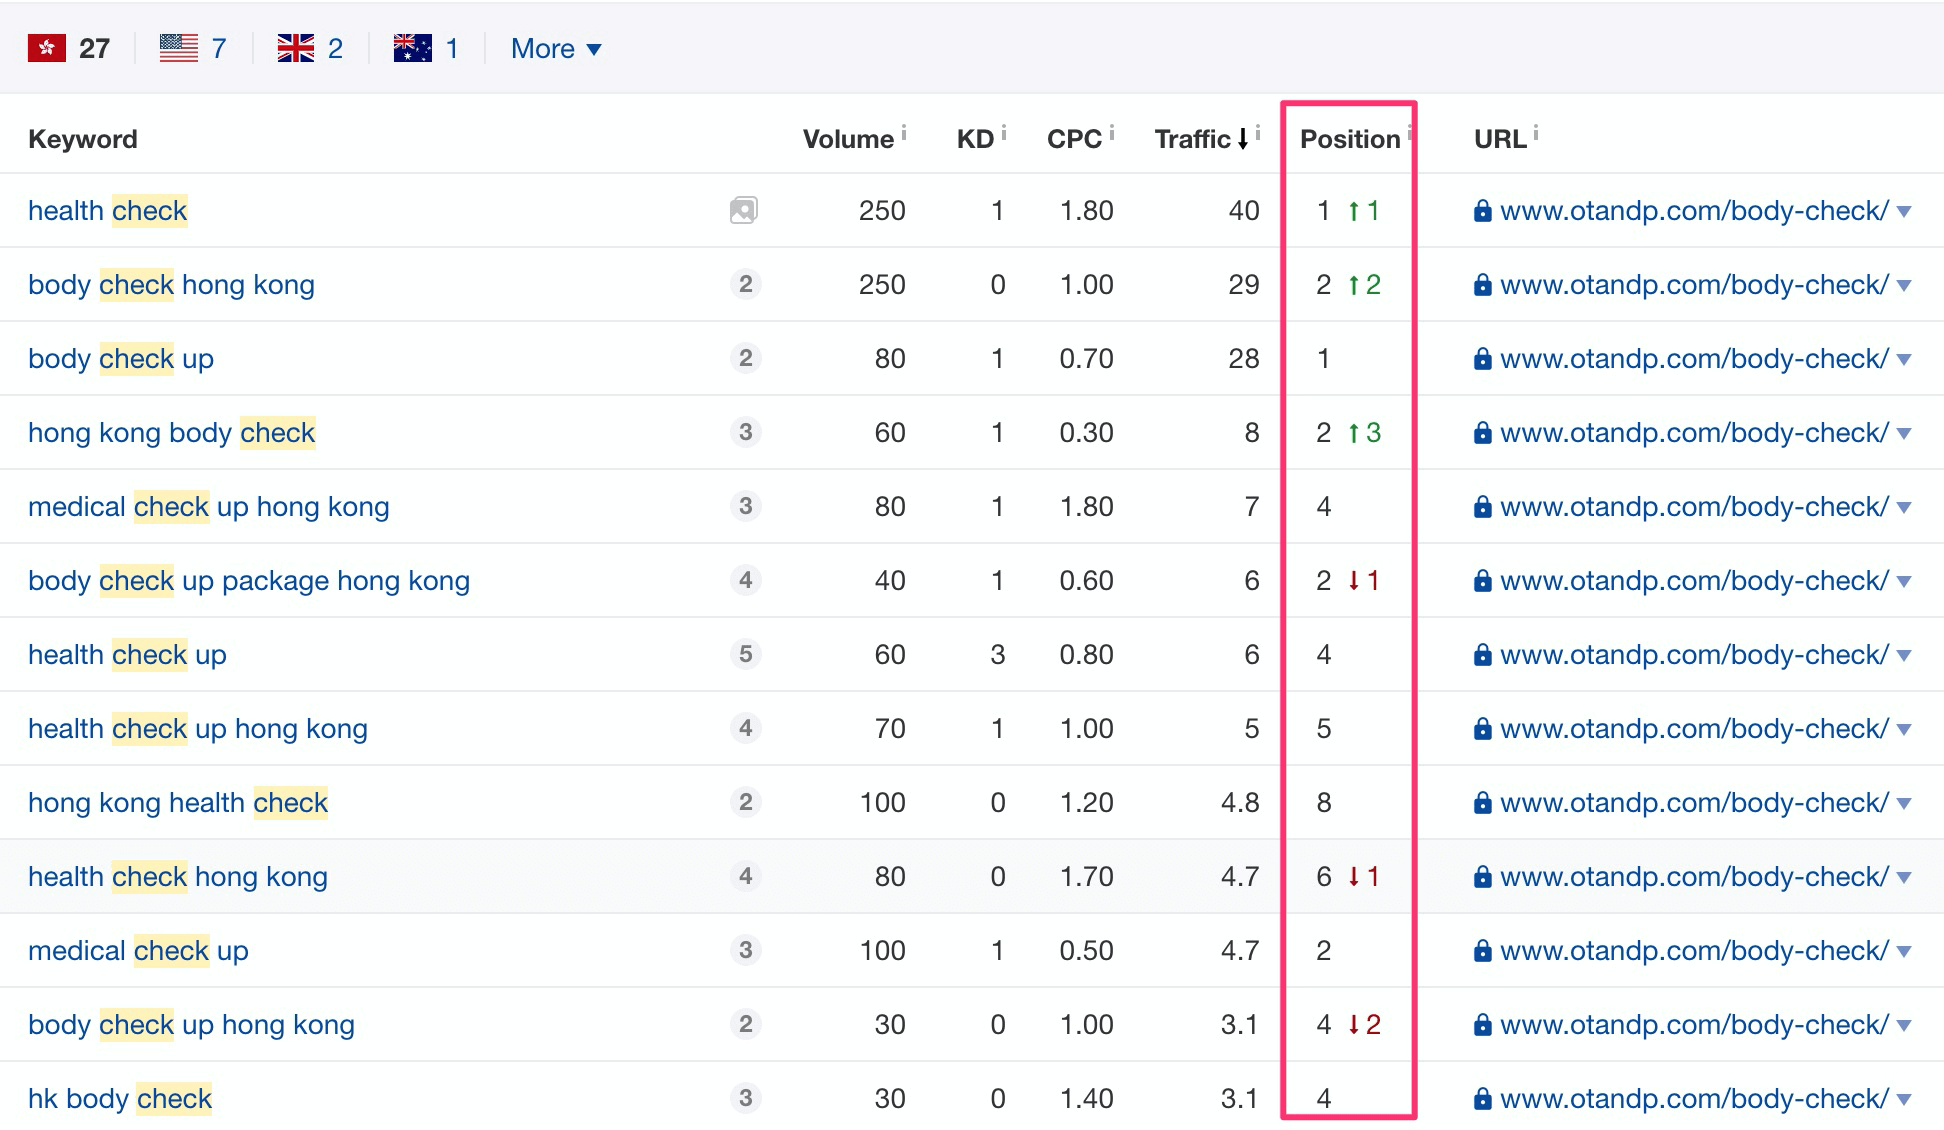 ahrefs ranking results